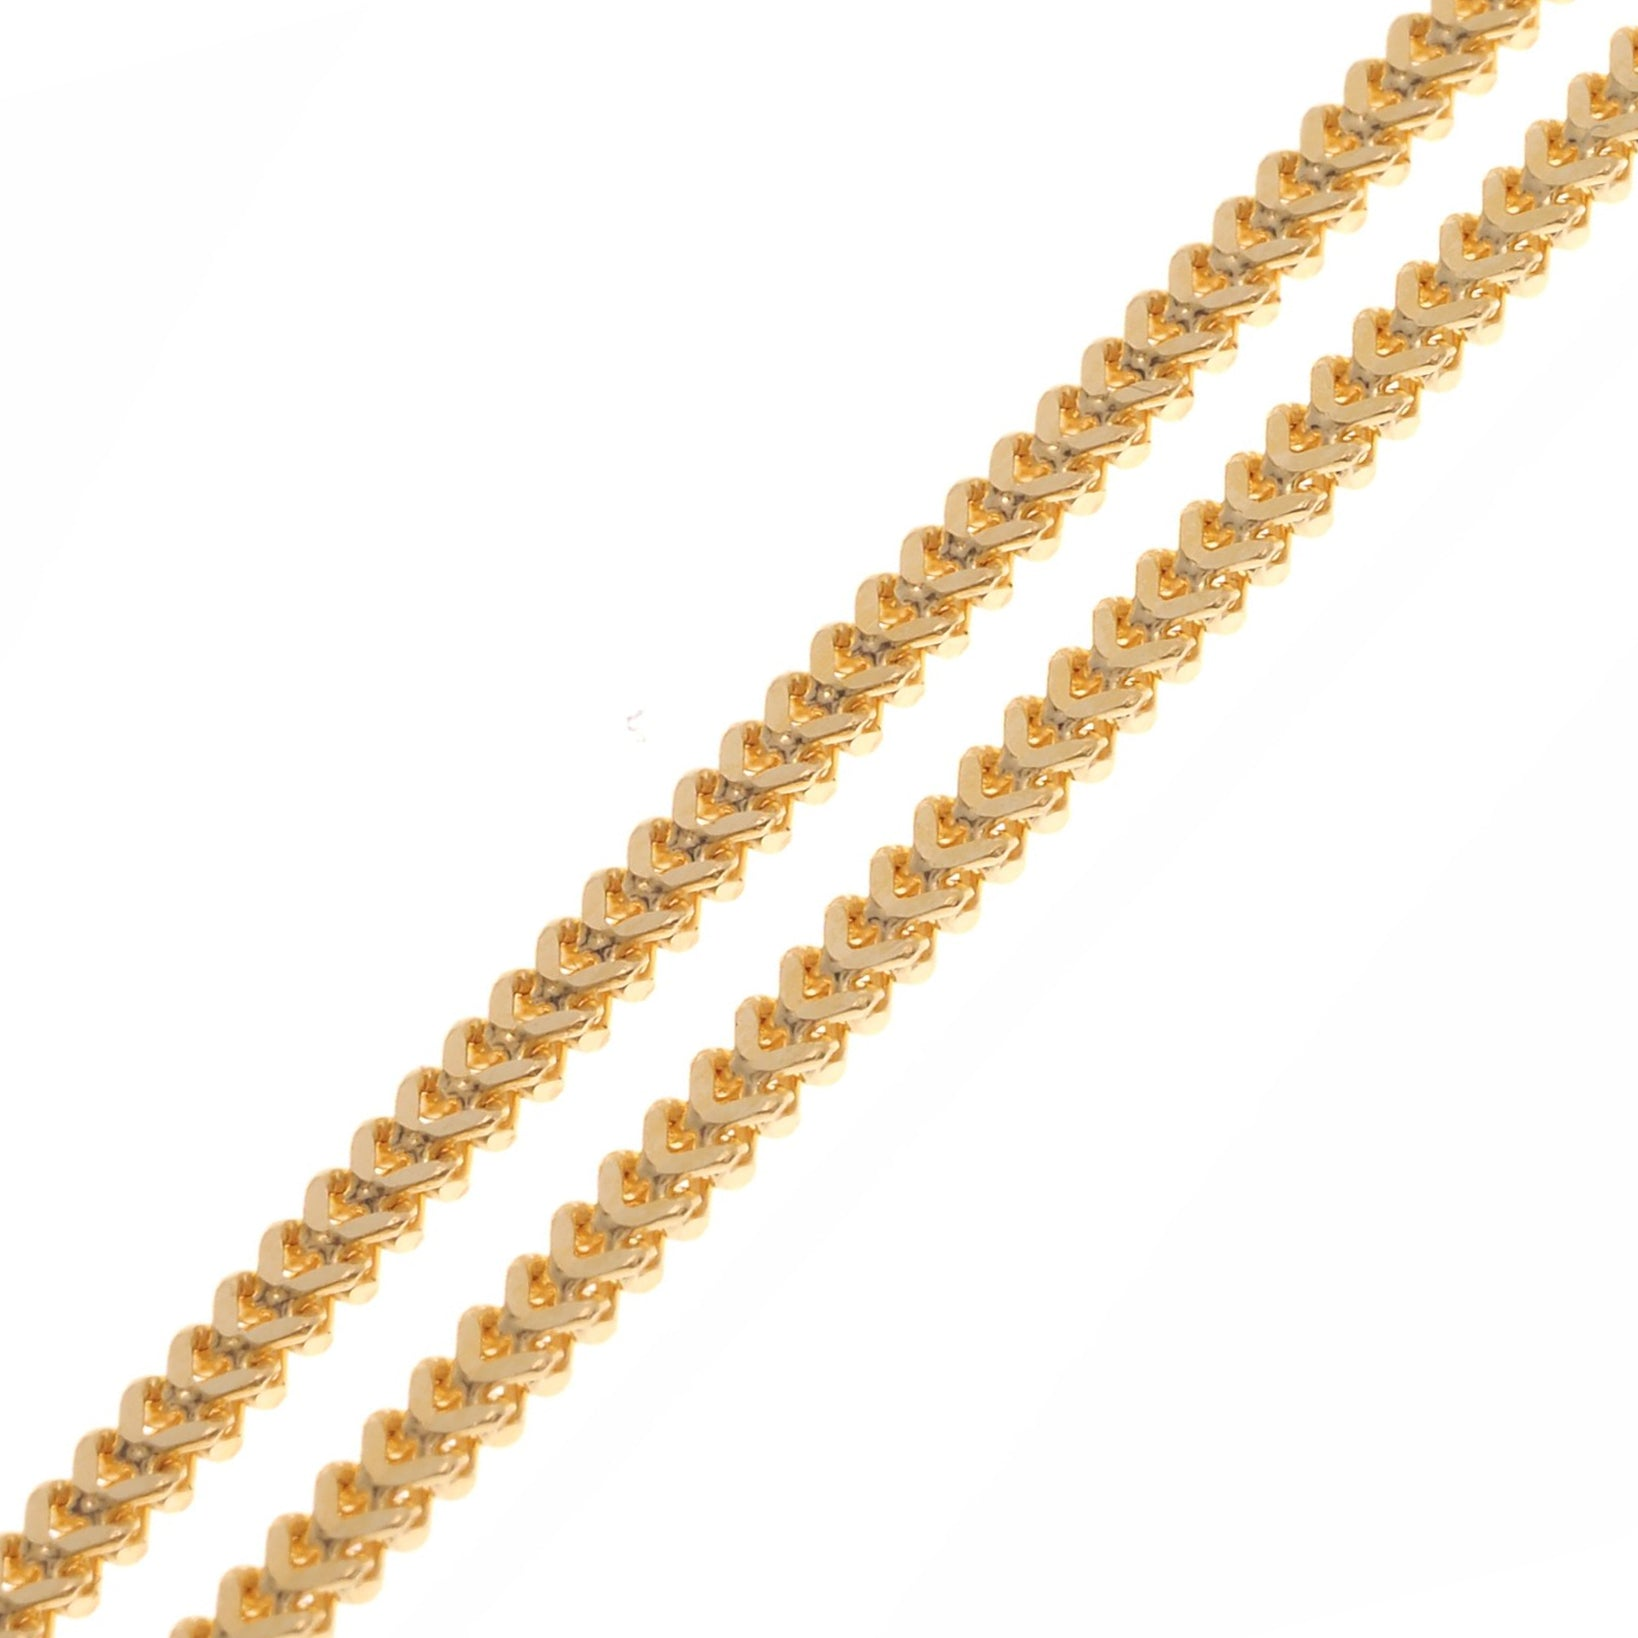 22ct Gold Foxtail Chain with a lobster clasp C-3799